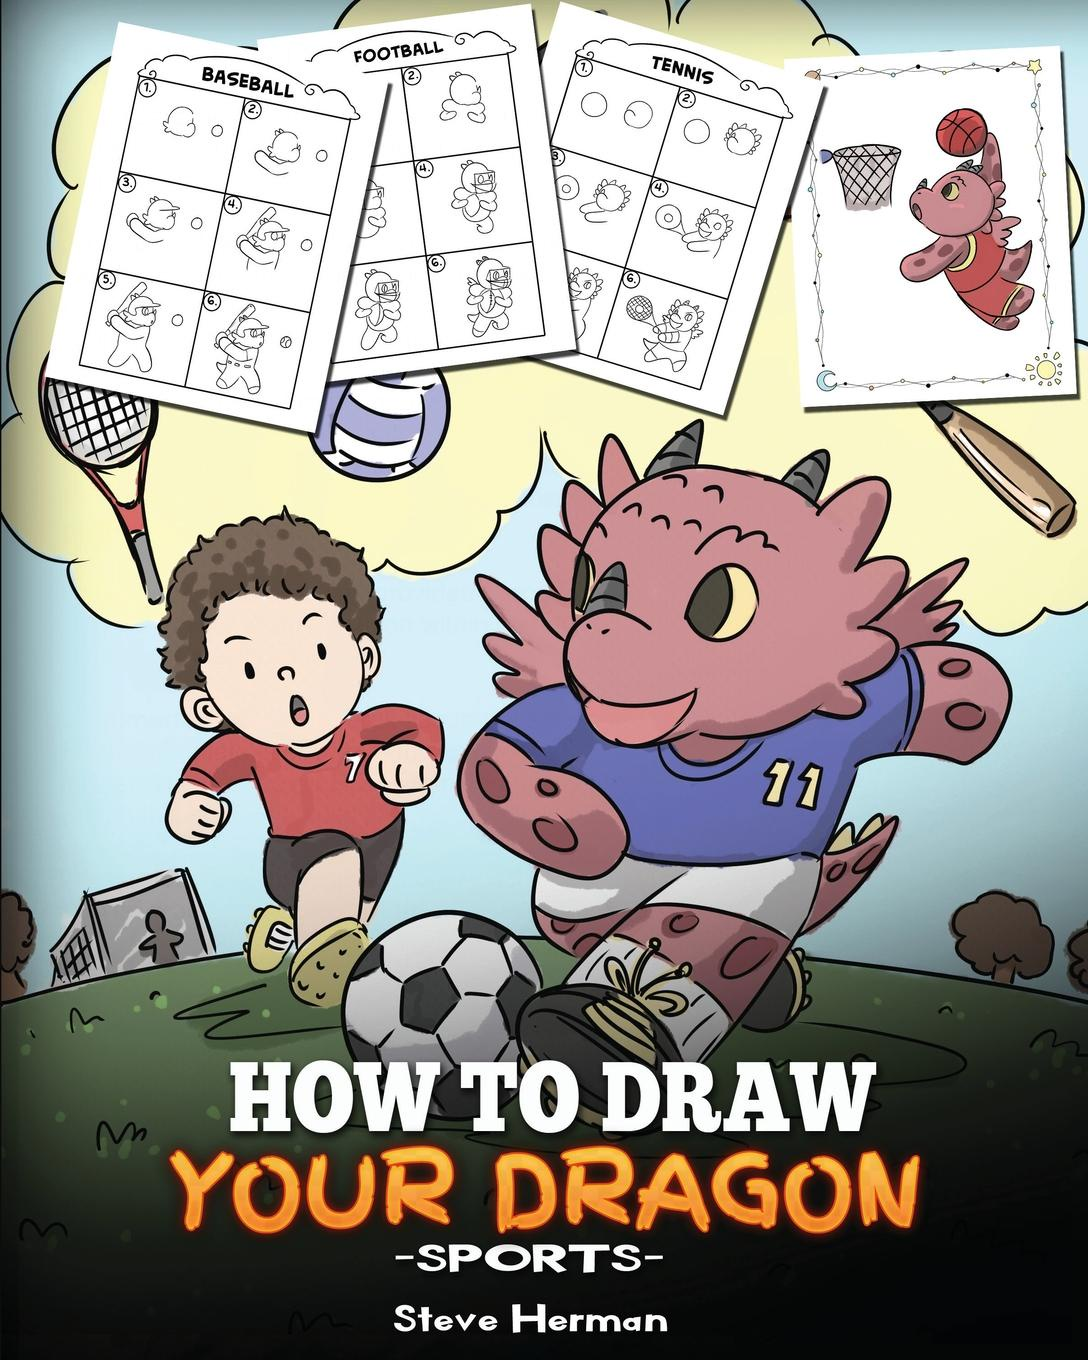 Steve Herman How To Draw Your Dragon (Sports). Learn How to Draw Cute Dragons Playing Fun Sports. A Fun and Easy Step by Step Guide To Draw Dragons and Teach Popular Sports for Kids printio draw more red